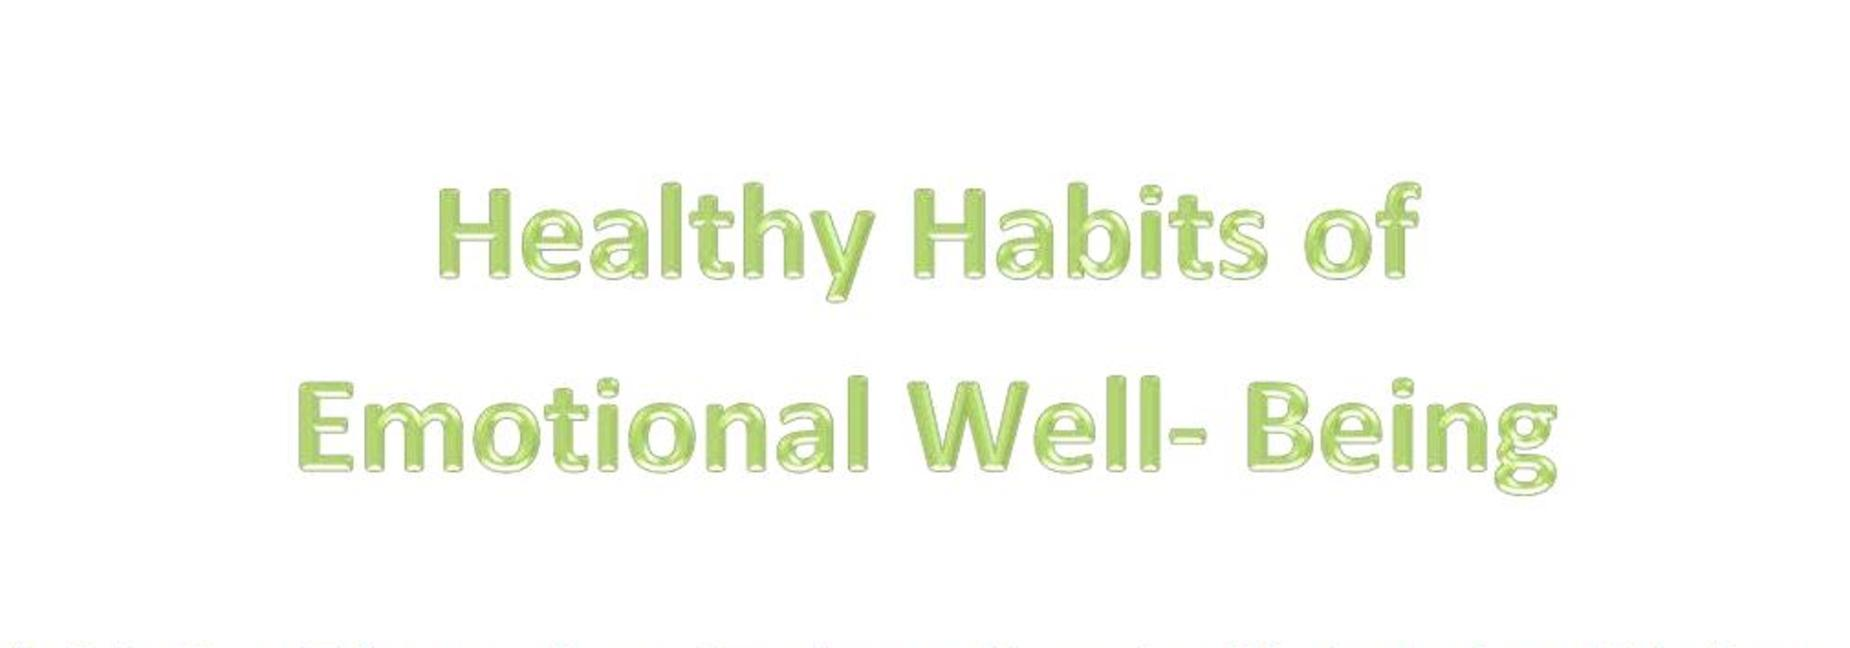 Health Habits of Emotional Well-Being